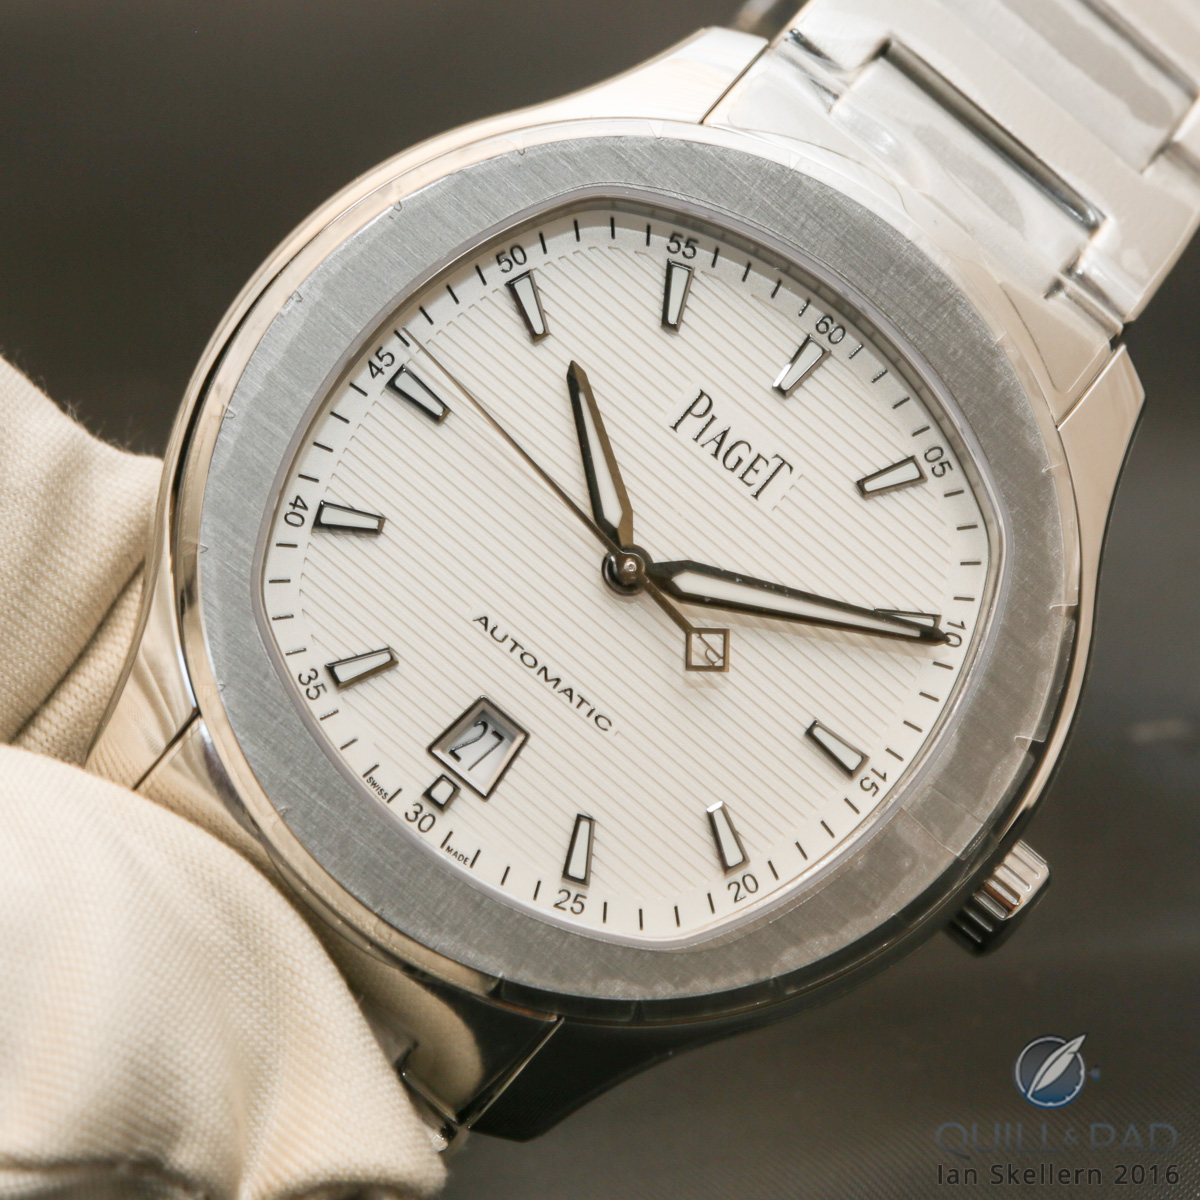 Piaget Polo S with white dial